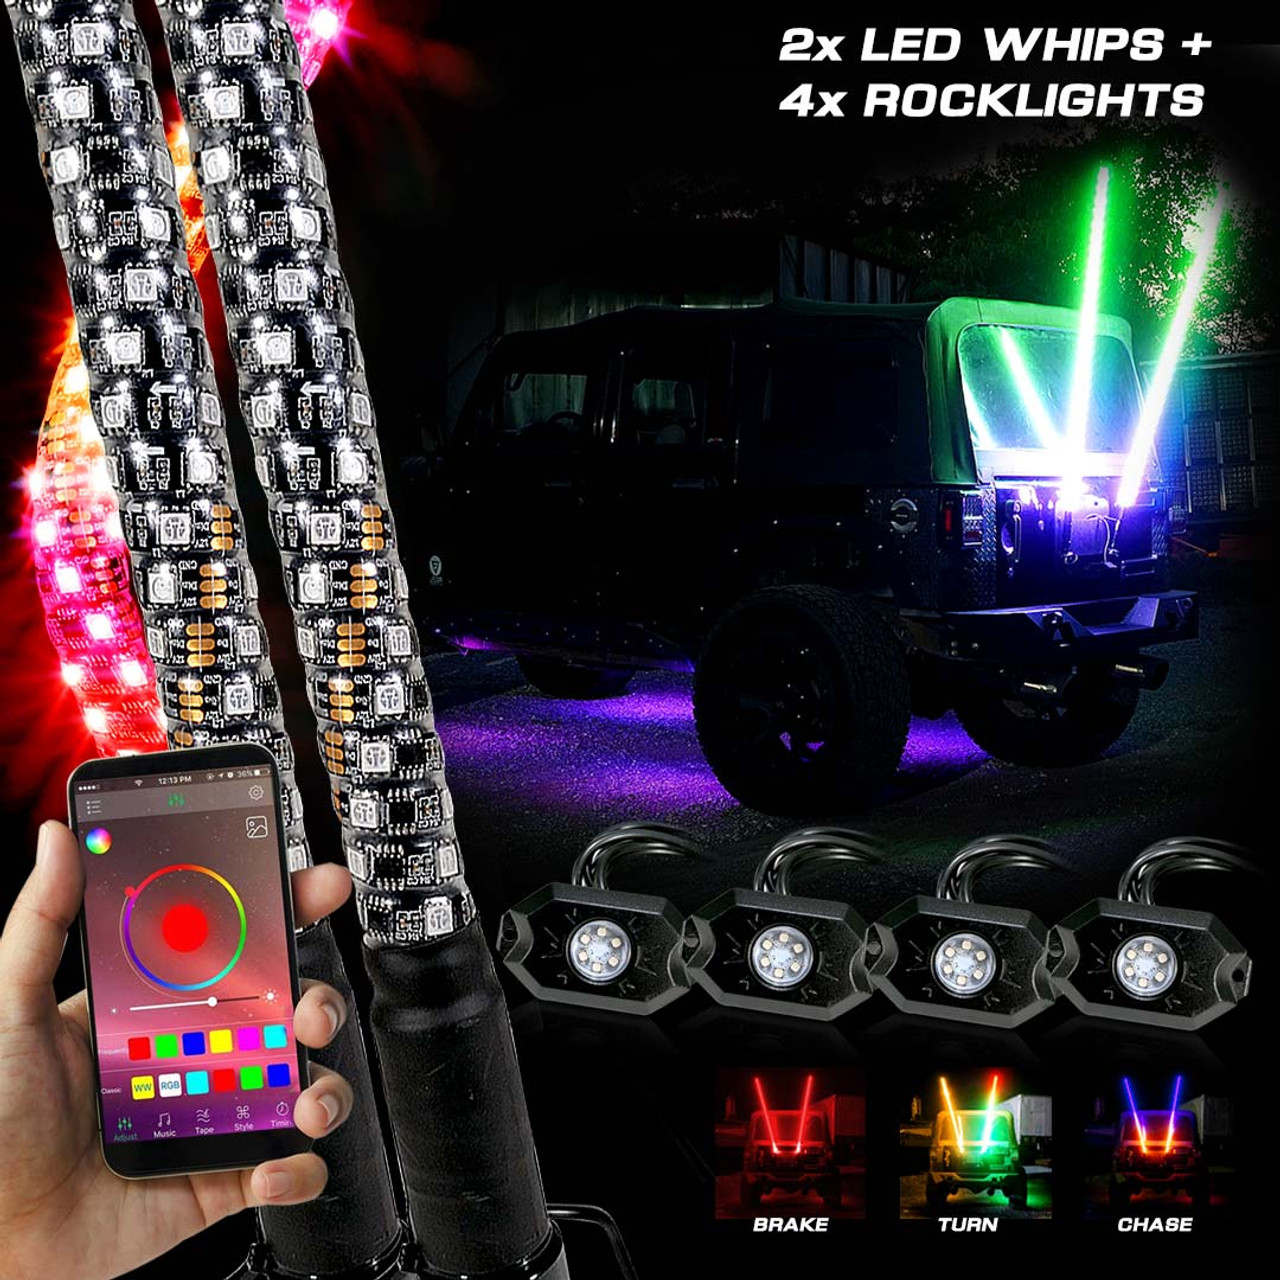 Lighted Whip Wiring Diagram